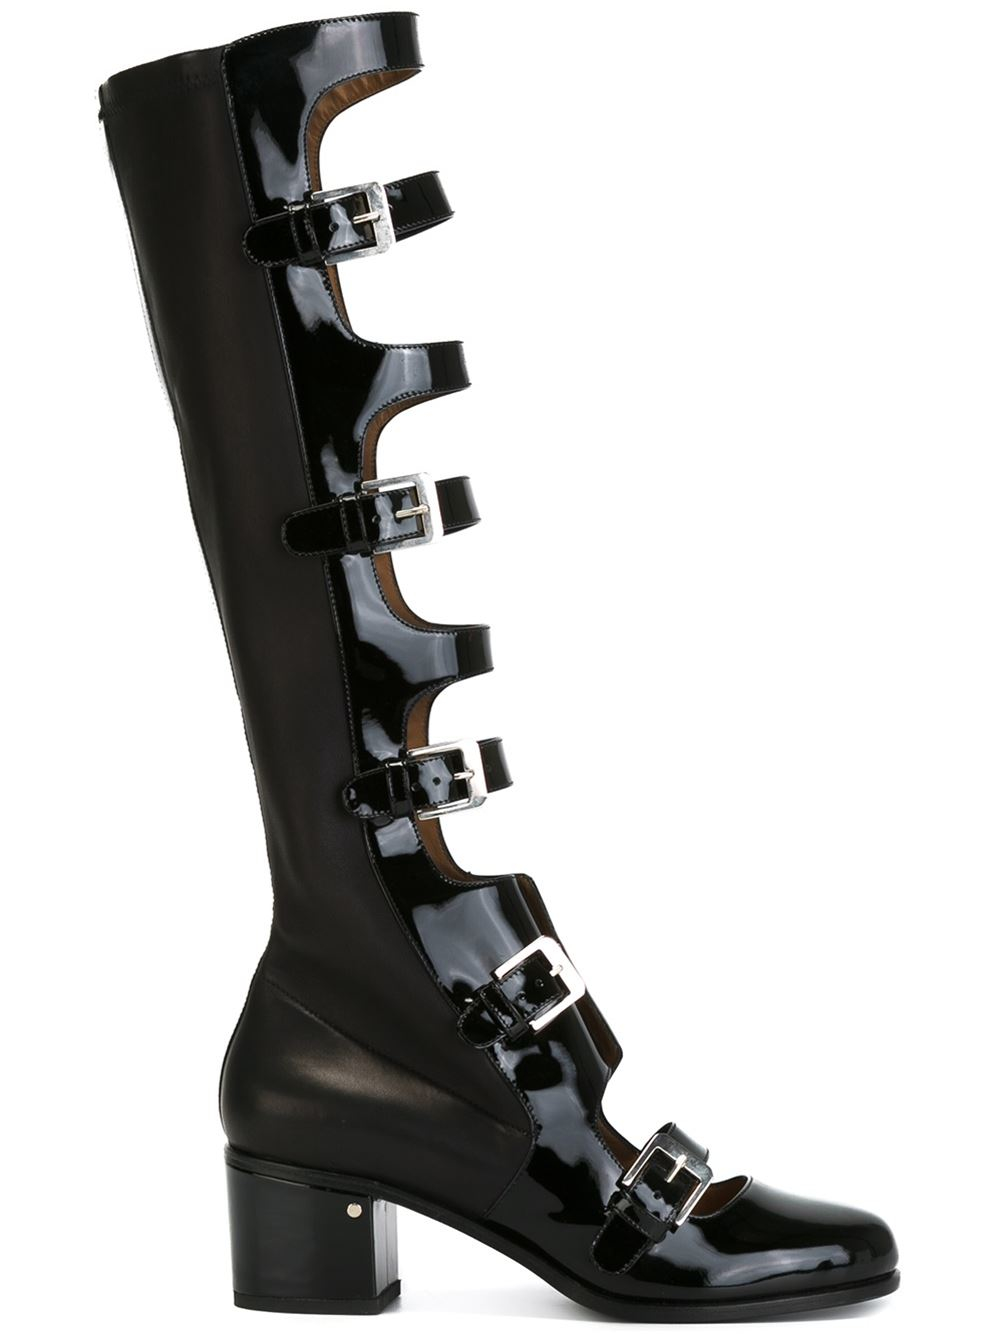 Countdown Package Cheap Price Huge Surprise Sale Online buckled knee high boots - Black Laurence Dacade E7wAt3RxO